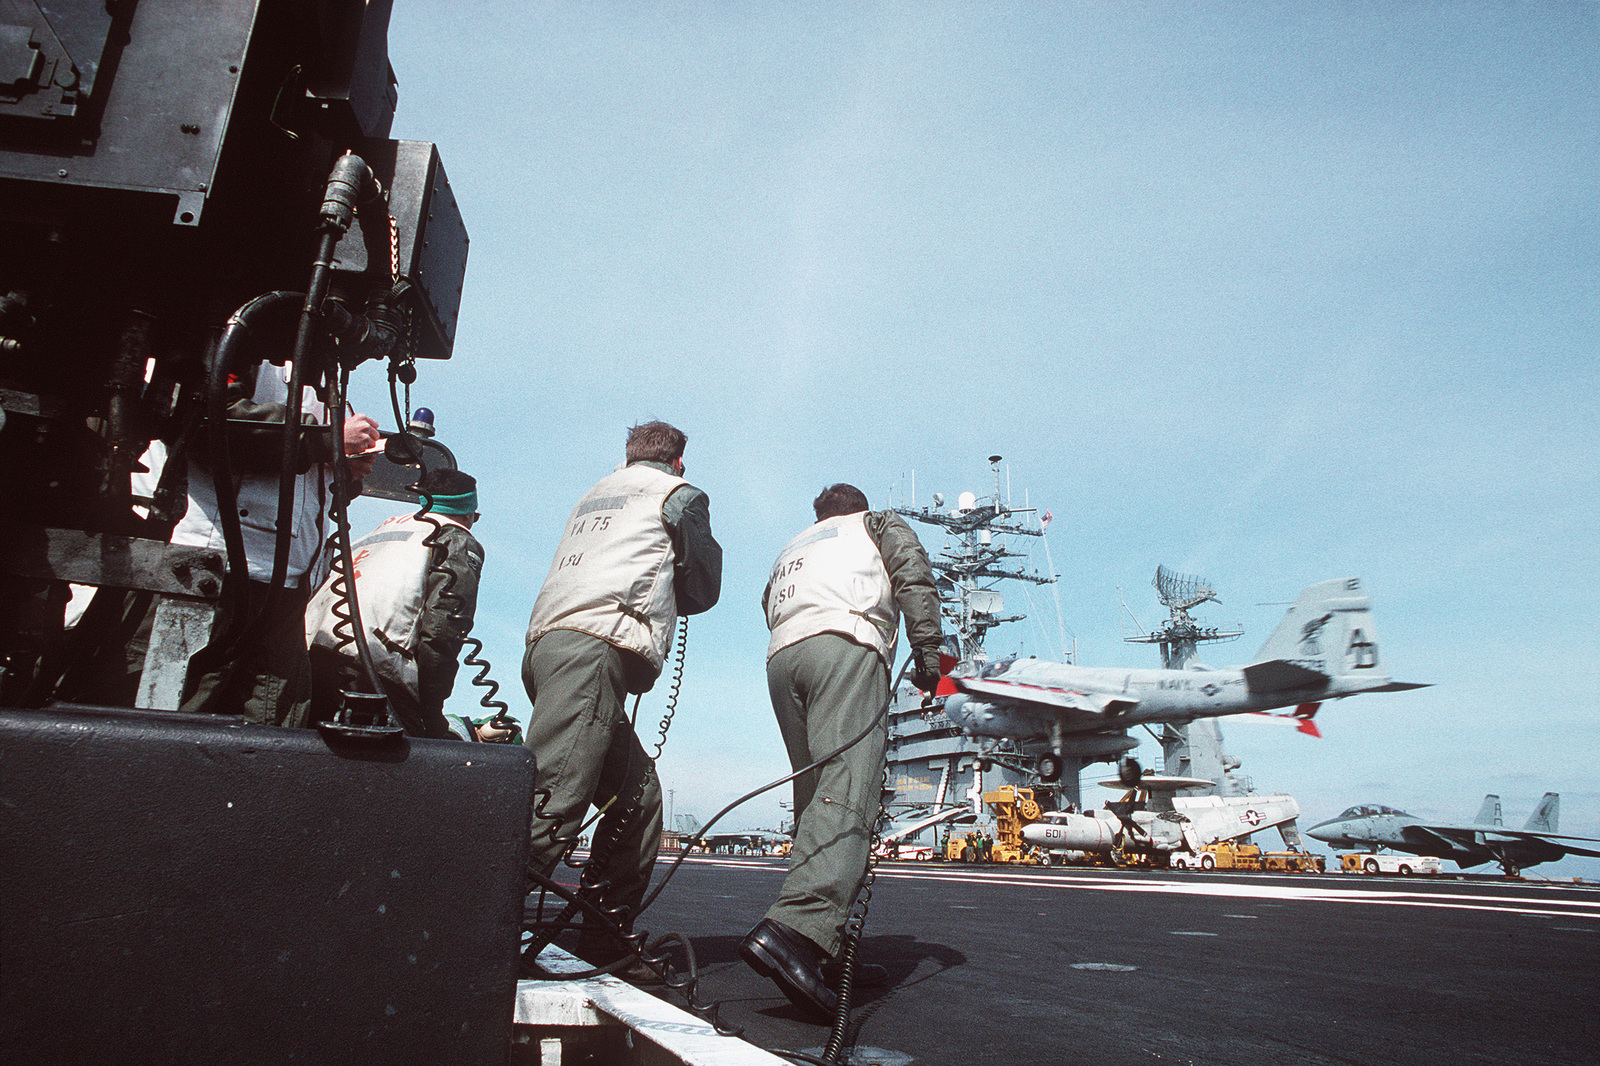 The Landing Signal Officers (LSO) of Attack Squadron Seventy-Five (VA-75) watch as one of the squadrons A-6E Intruder aircraft settles down on the flight deck during recovery (landing) operations as part of carrier qualifications on board the nuclear-powered aircraft carrier USS George Washington (CVN-73)